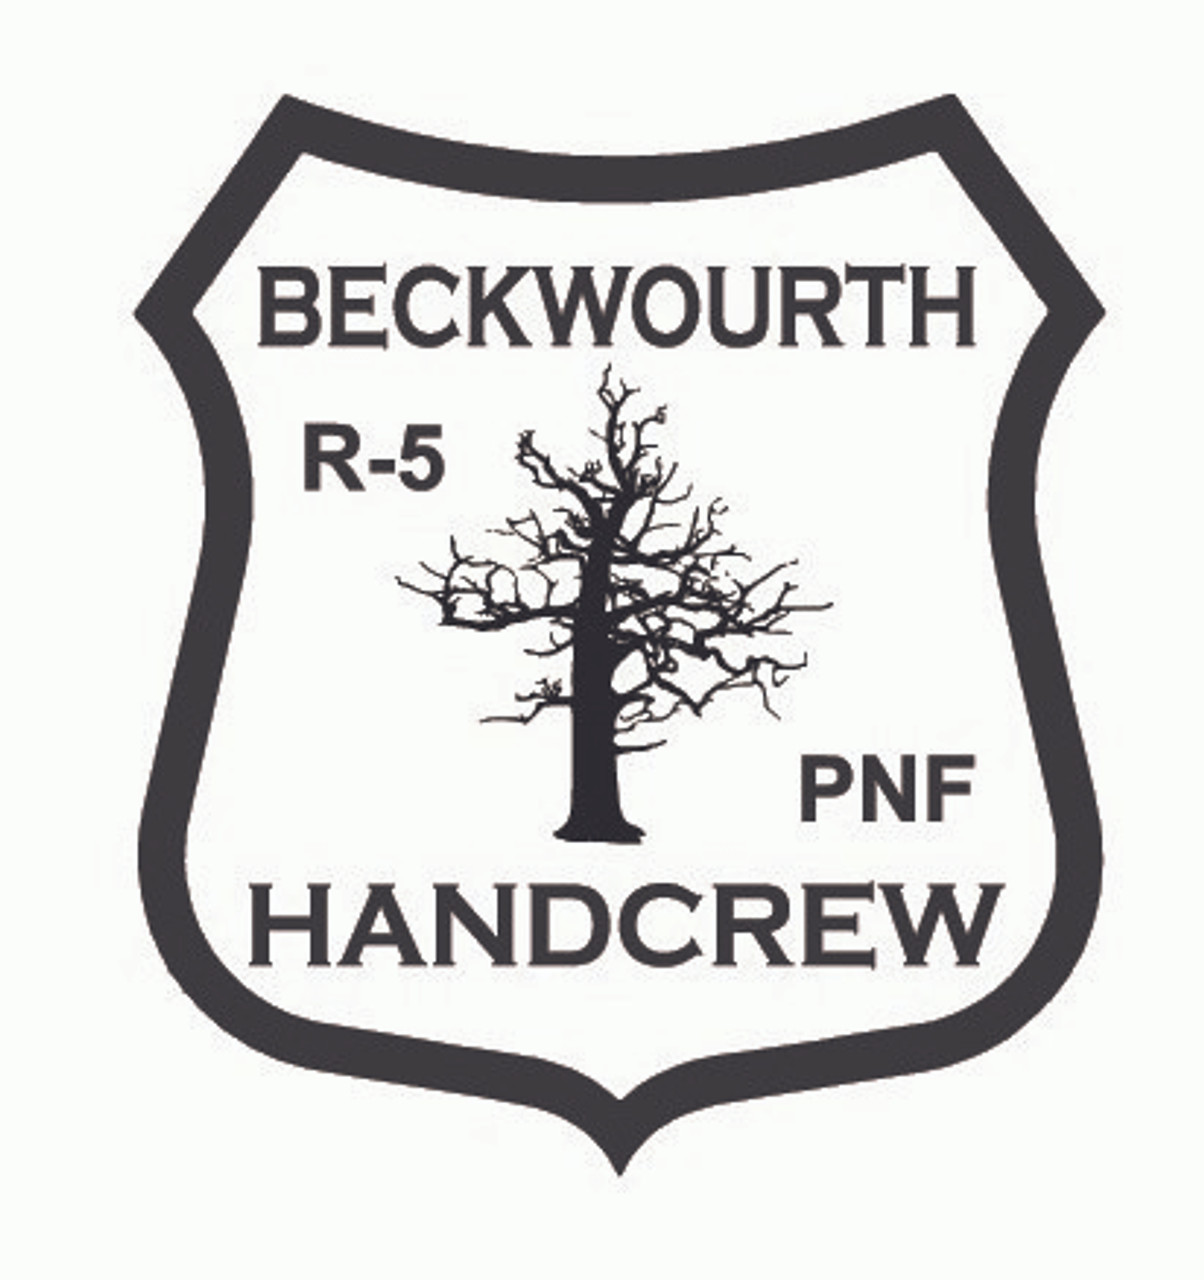 Beckwourth Hand Crew Buckle (RESTRICTED)